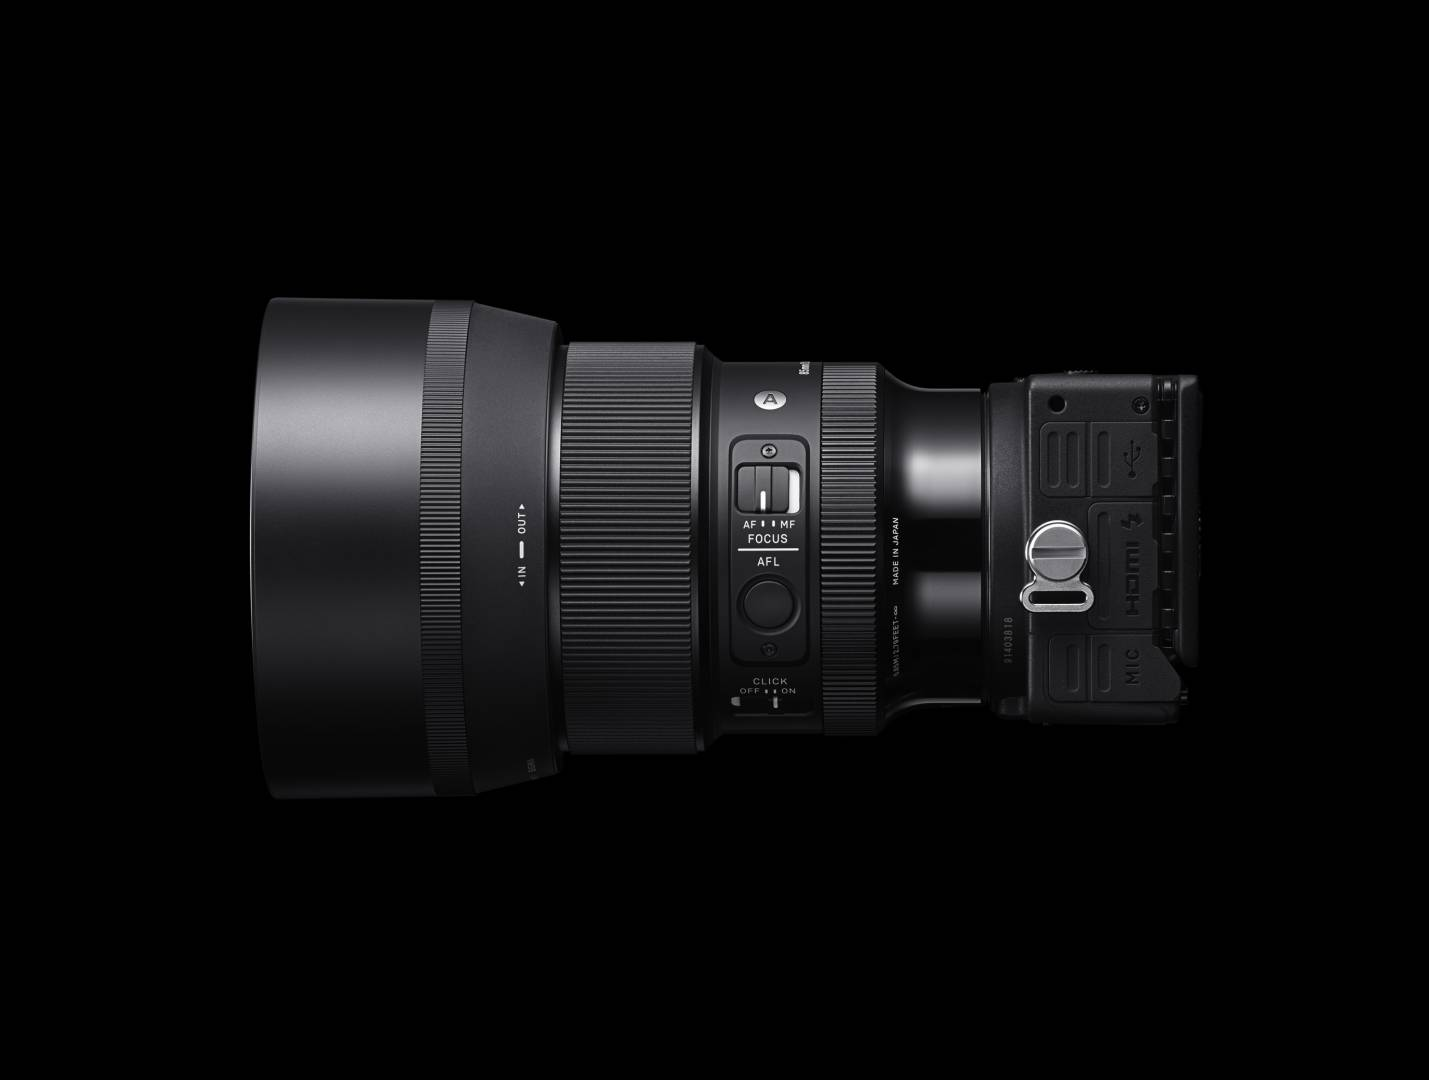 The new lens mounted on Sigma's compact fp camera